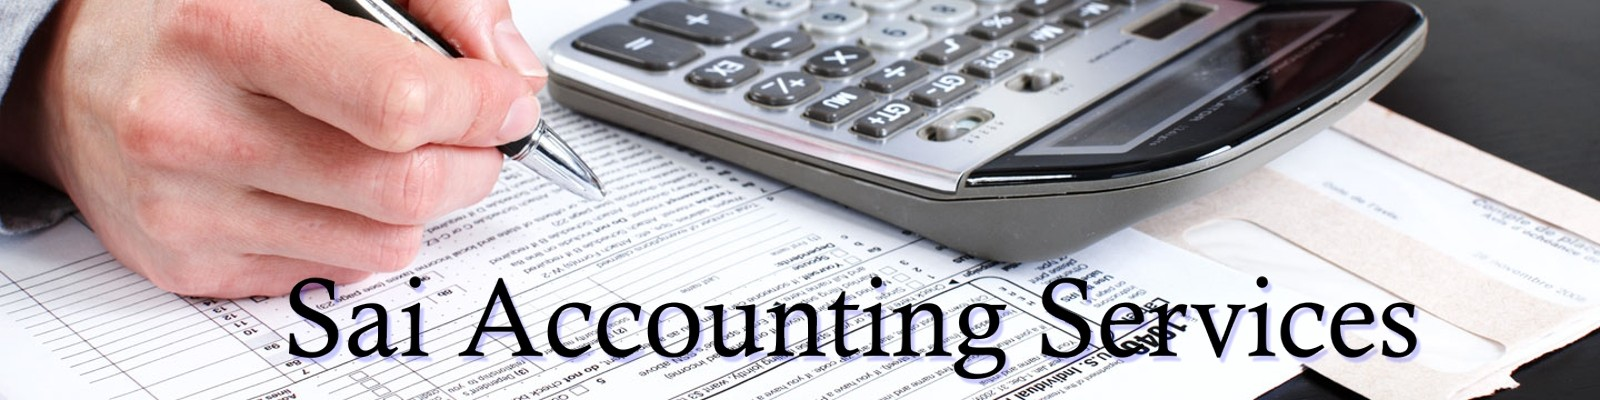 Housing Society Accounting Services Mumbai Thane Navi Mumbai